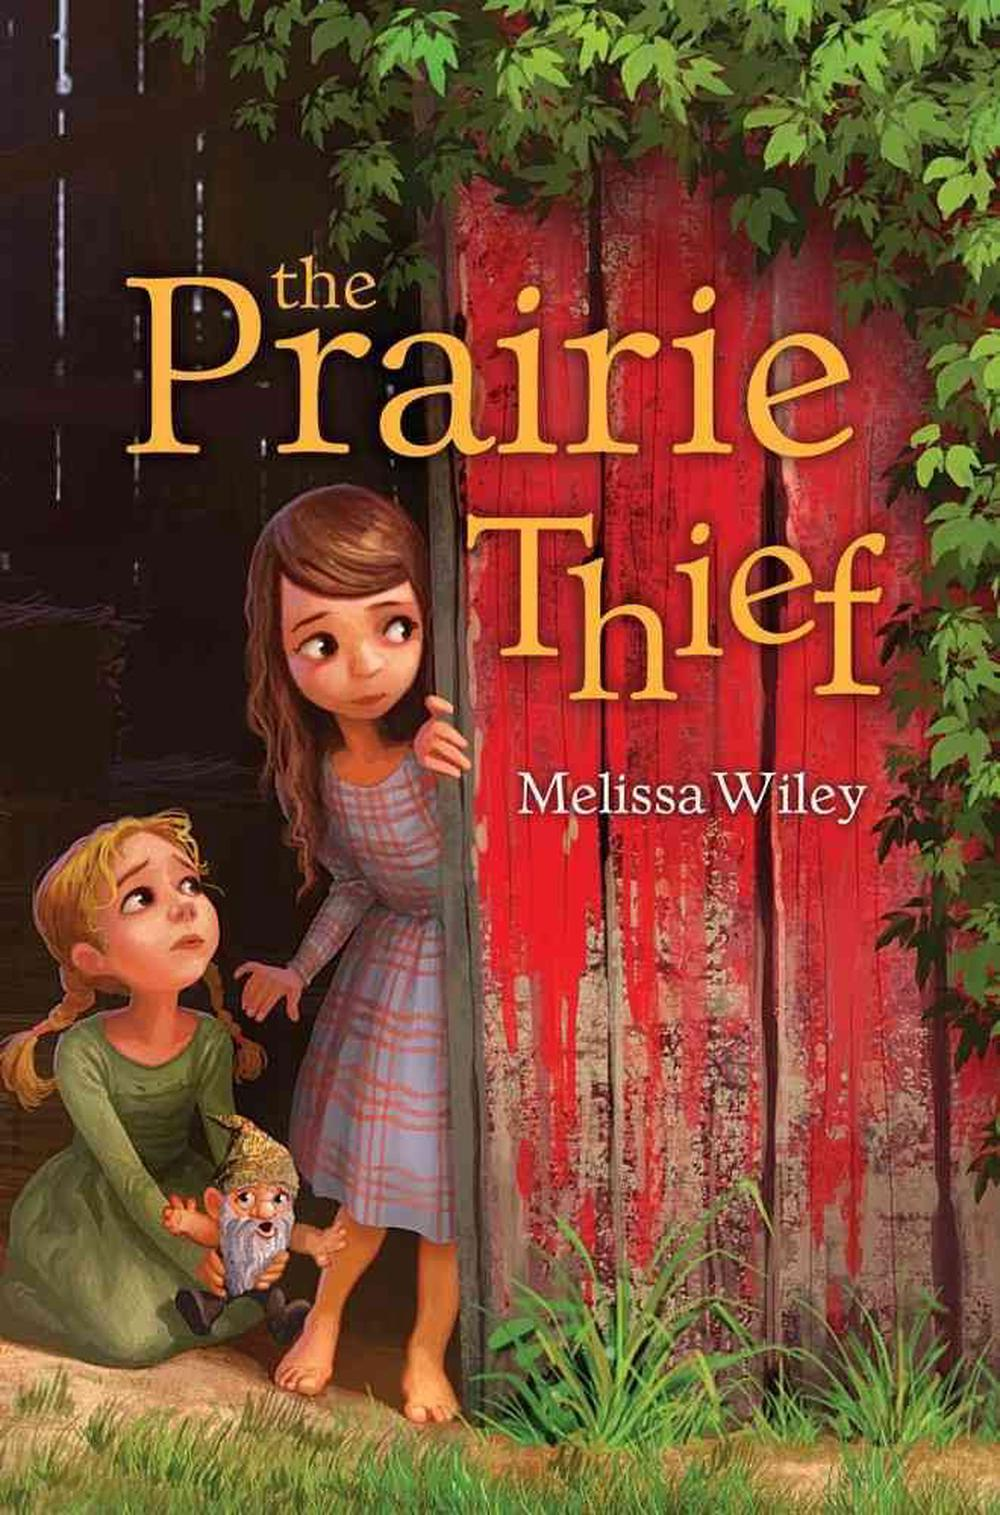 The Prairie Thief by Melissa Wiley, ISBN: 9781442440562